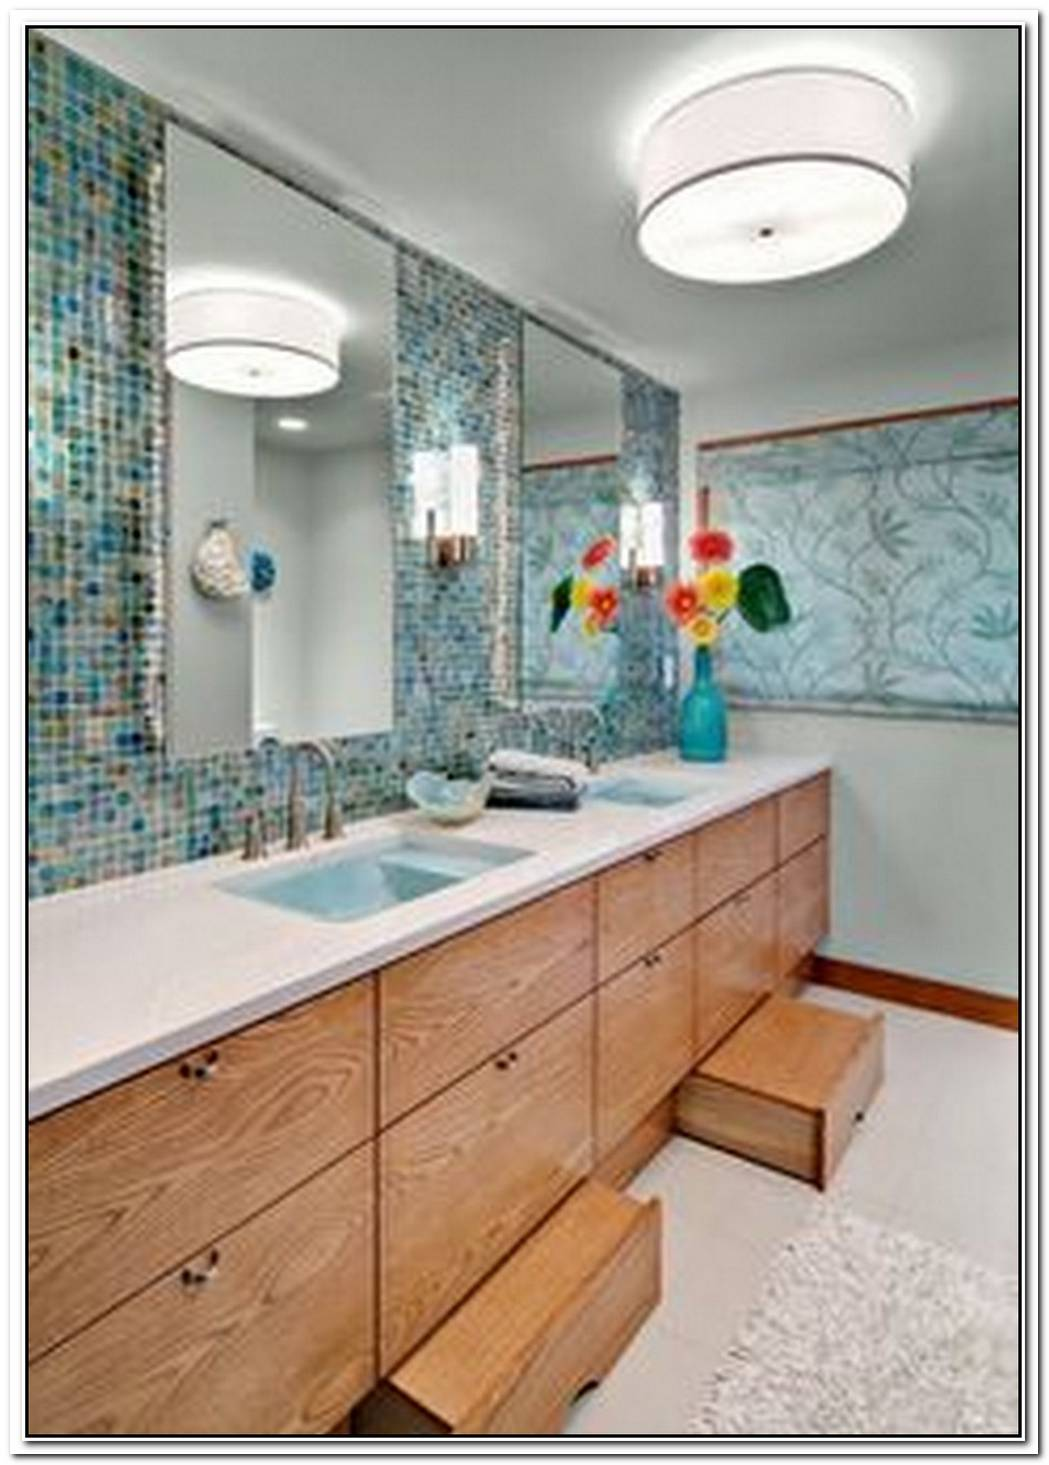 Playful Meets Sophisticated In This Stylish Childrens' Bathroom